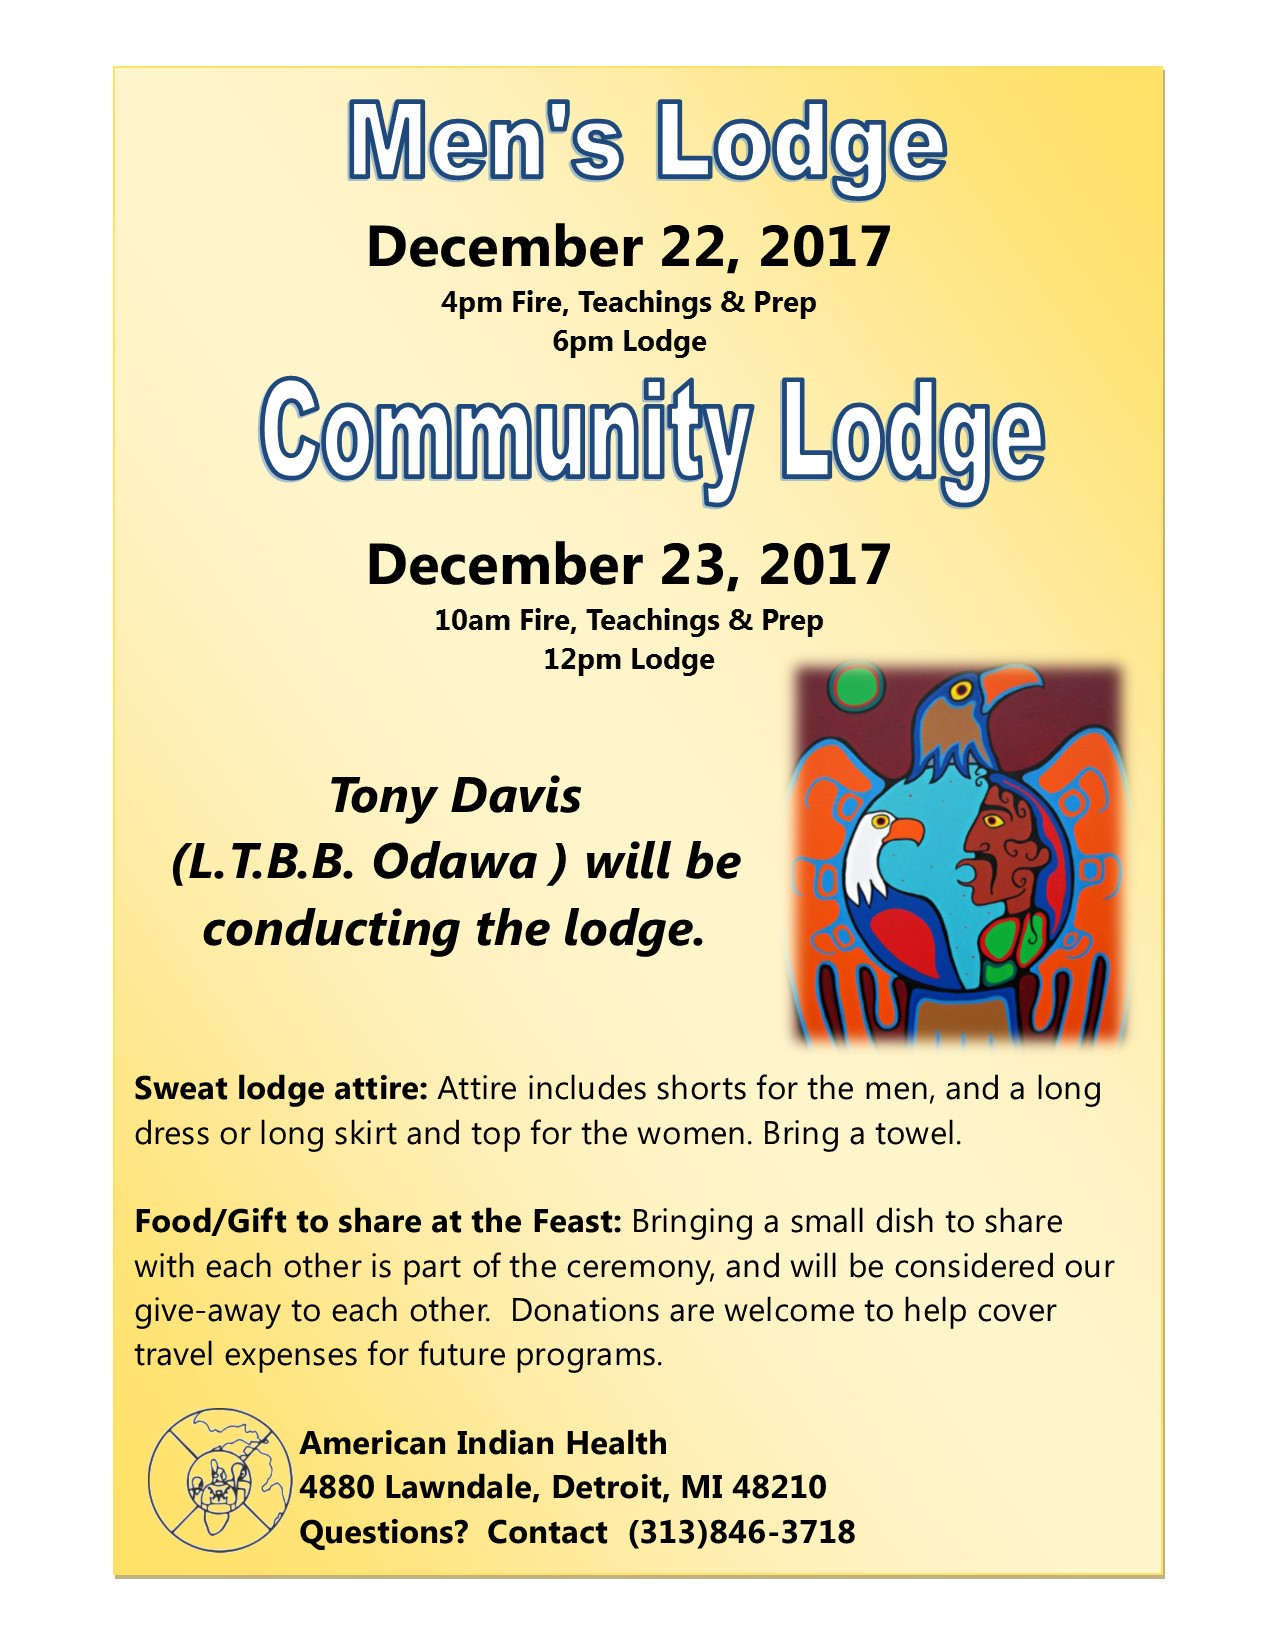 Aihfs community announcements see the flier below community sweat lodge december 23rd we will have a community sweat lodge here at aihfs conducted by tony davis of the little aiddatafo Image collections